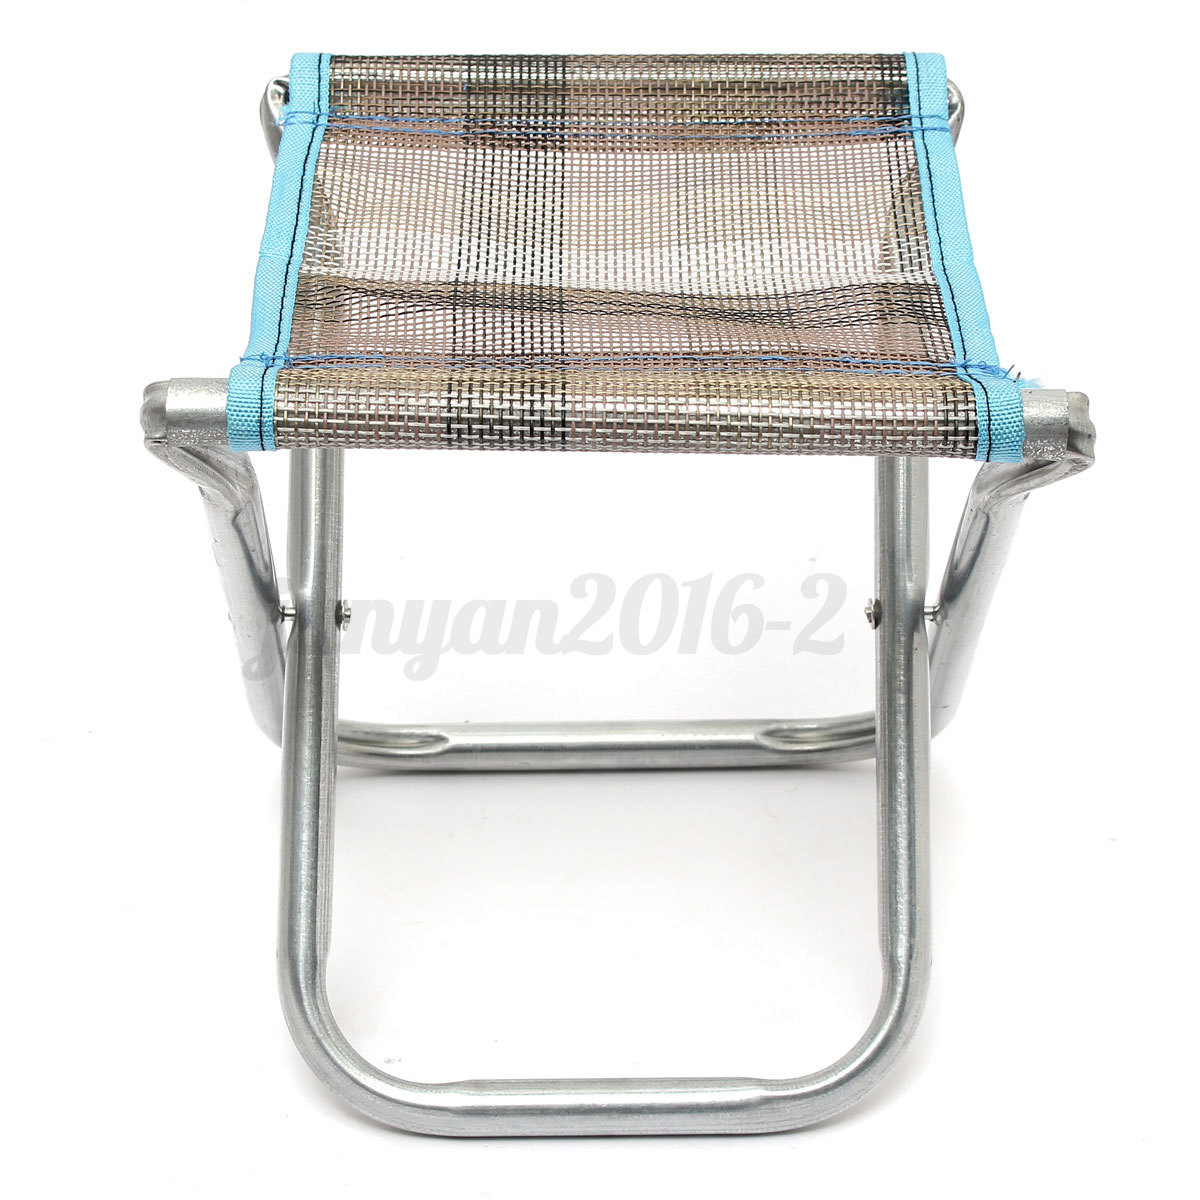 Folding Portable Camping Beach Chair Fold Up Camp Festival